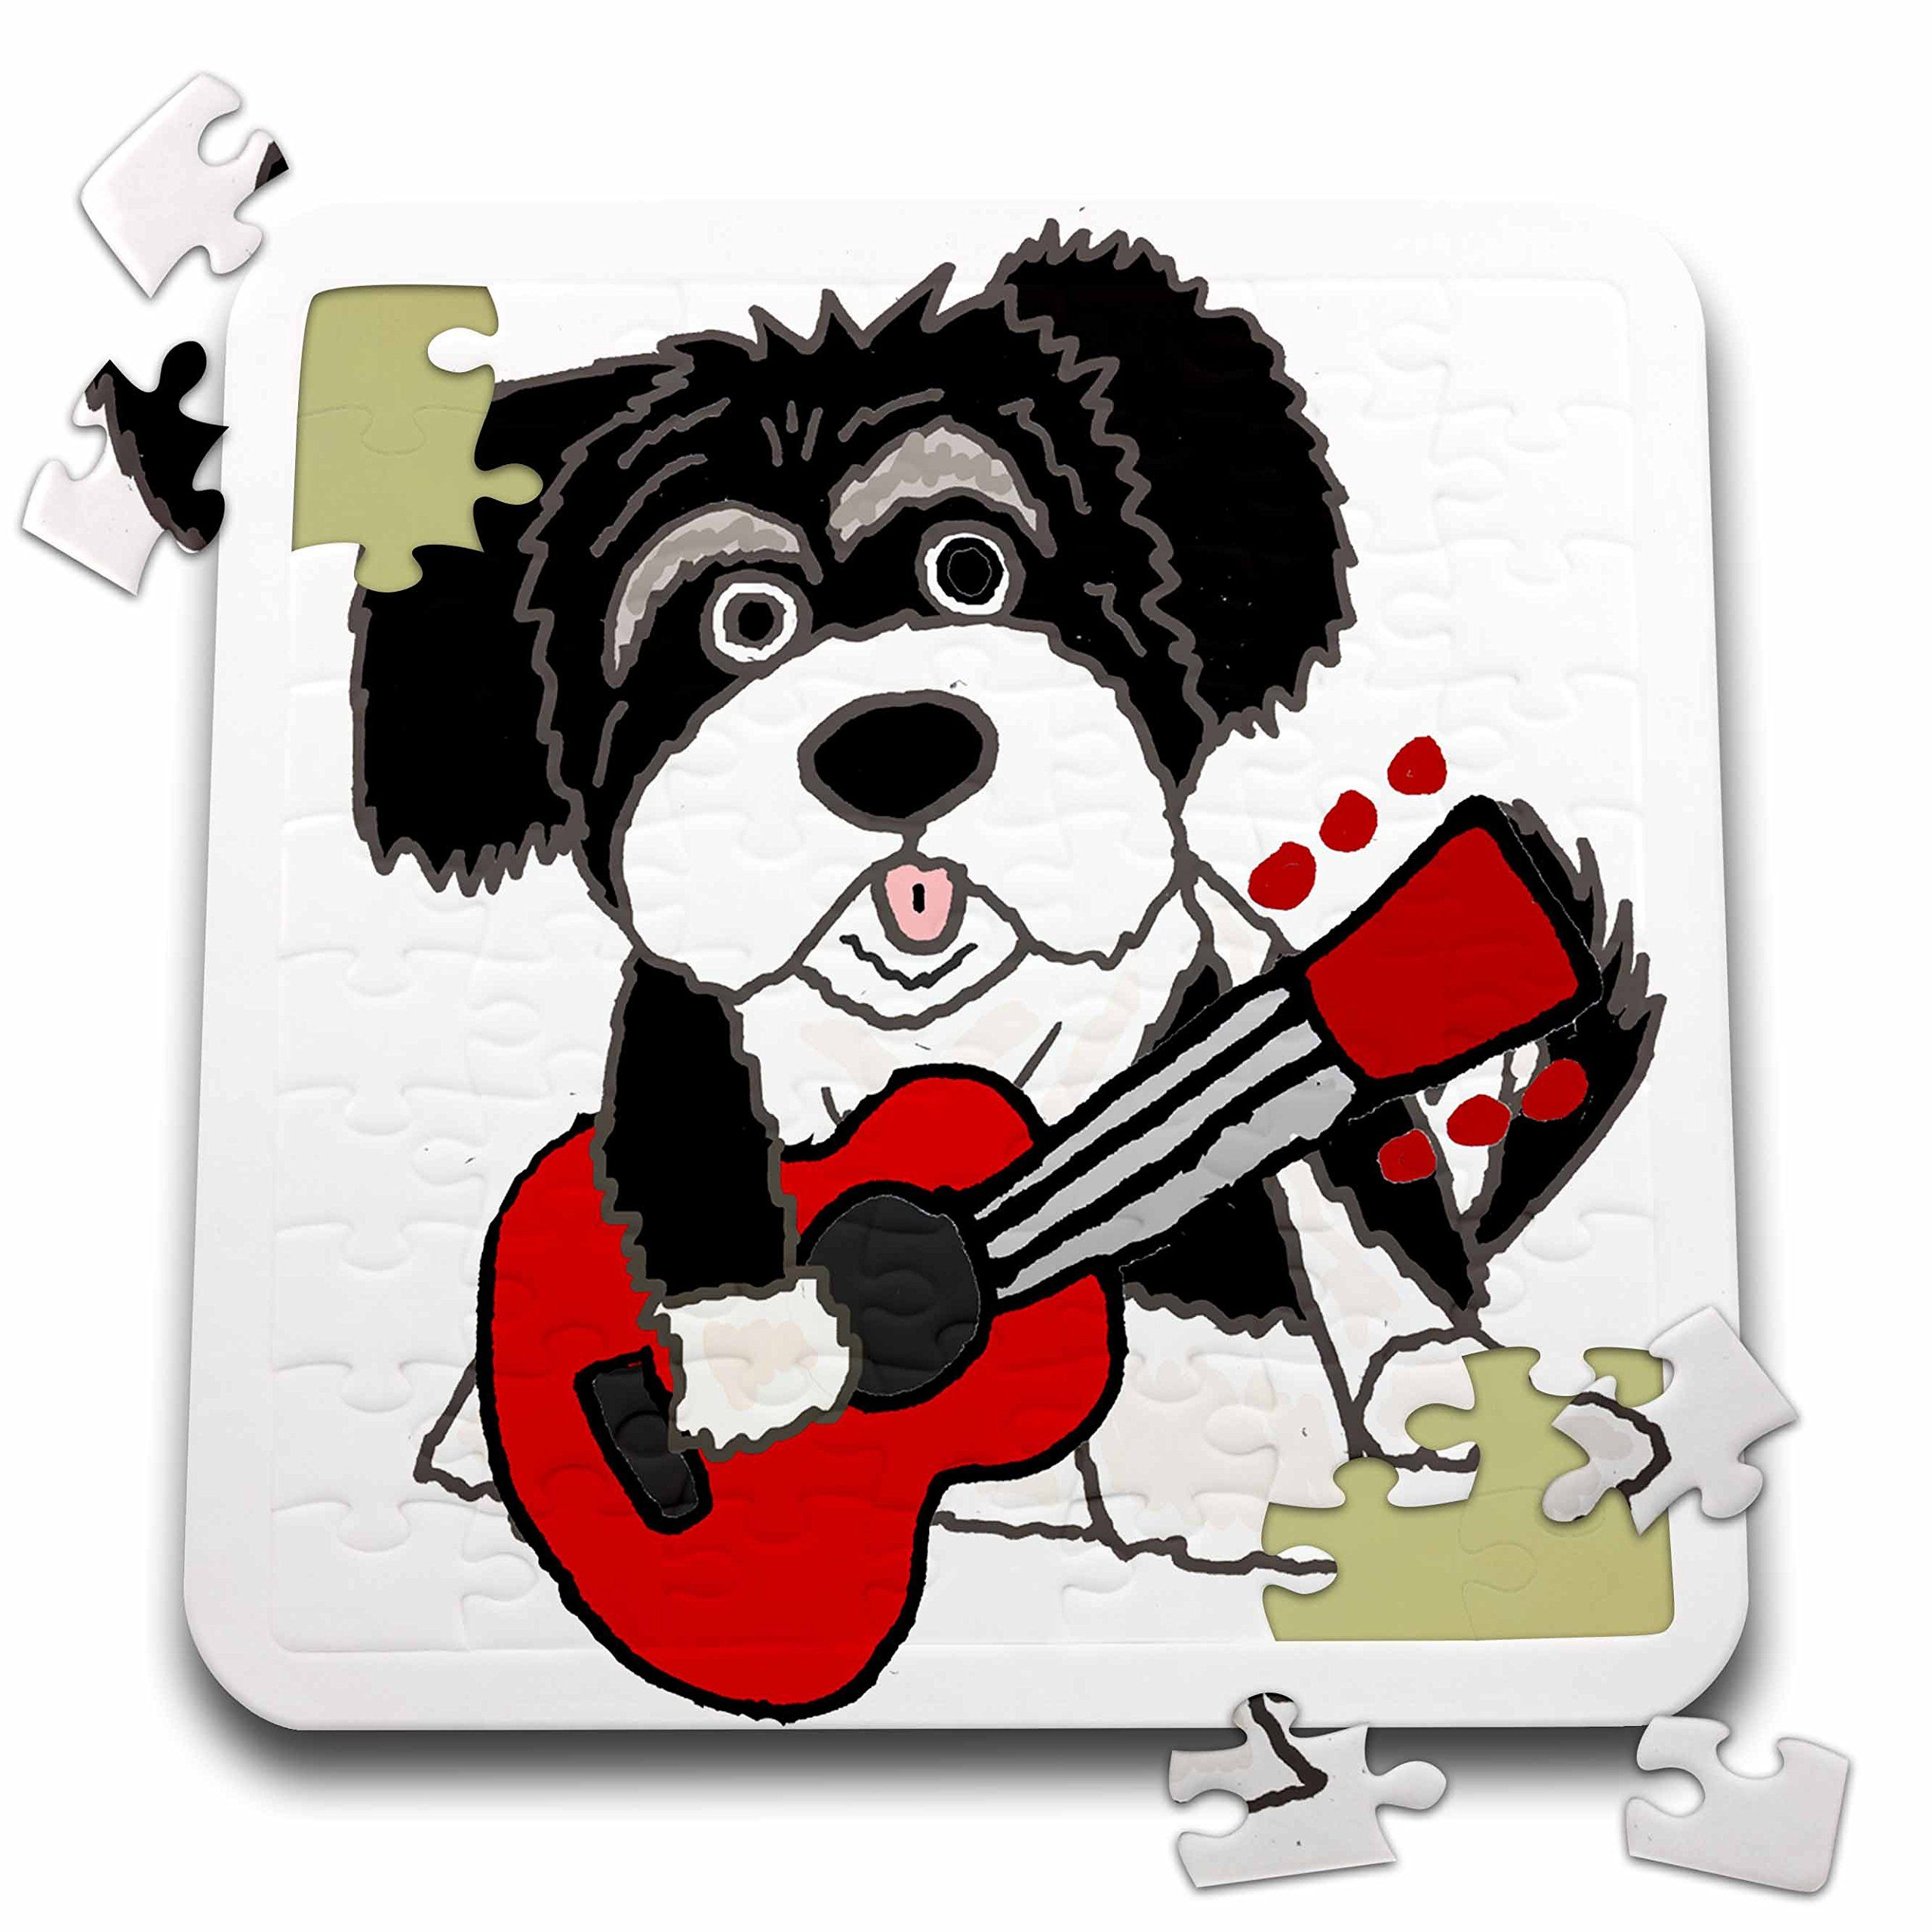 345a1945990d All Smiles Art Pets Funny Cute Havanese Puppy Dog Playing Guitar Cartoon  10x10 Inch Puzzle pzl 260931 2